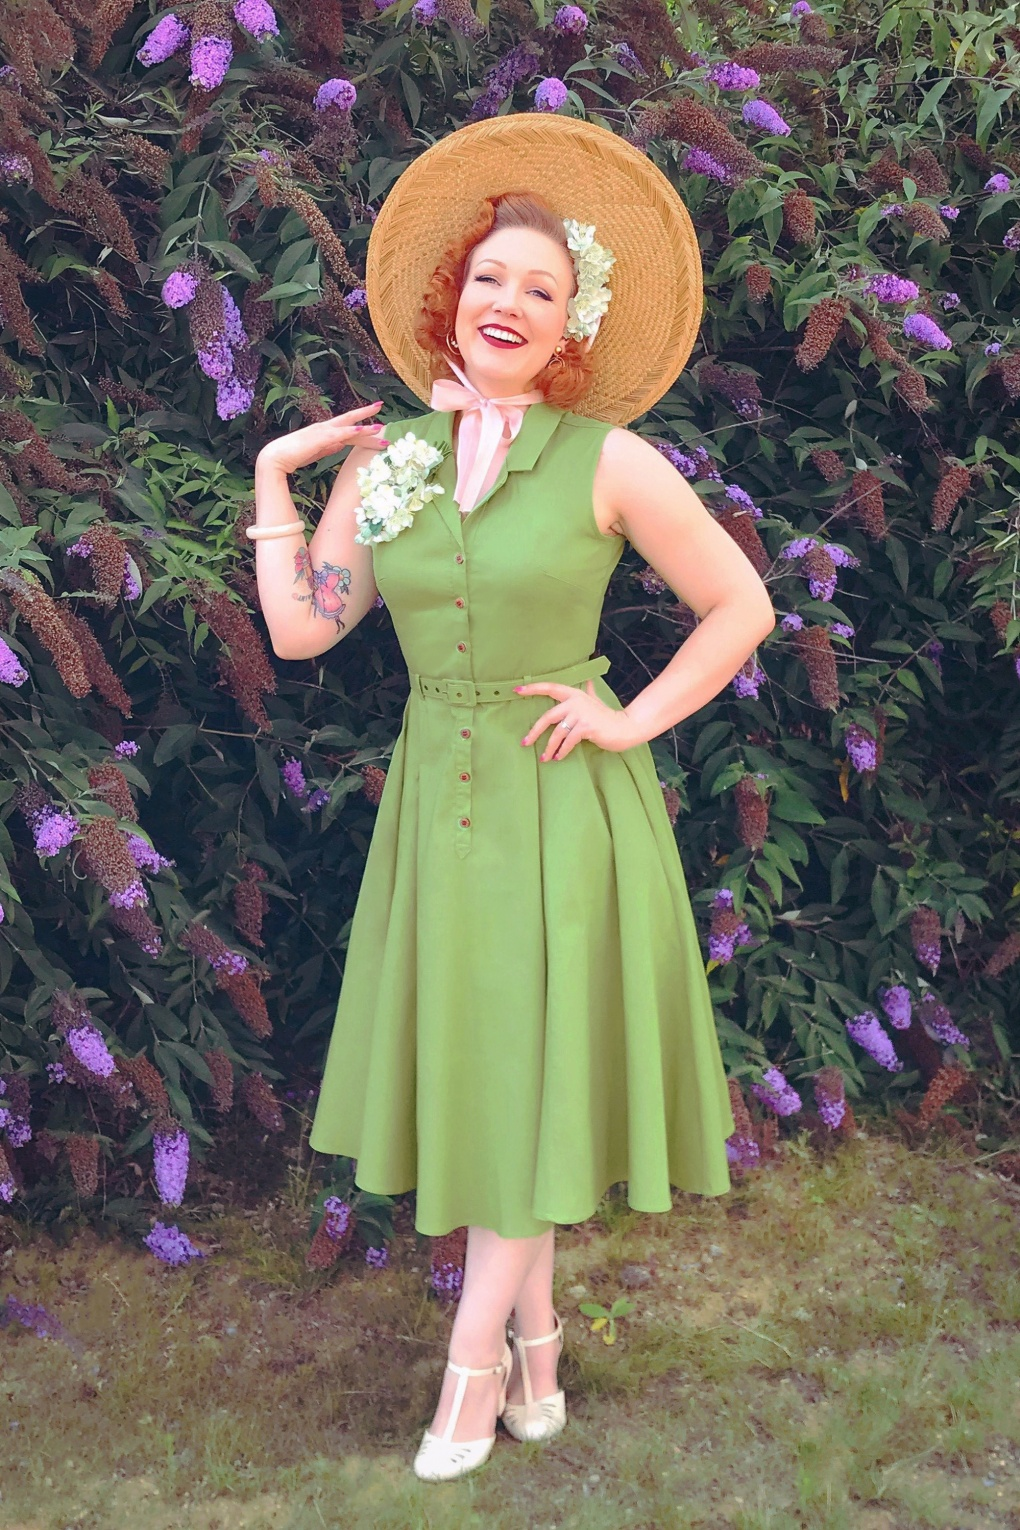 Vintage Shirtwaist Dress History 50s Caterina Sleeveless Swing Dress in Pear Green £24.95 AT vintagedancer.com